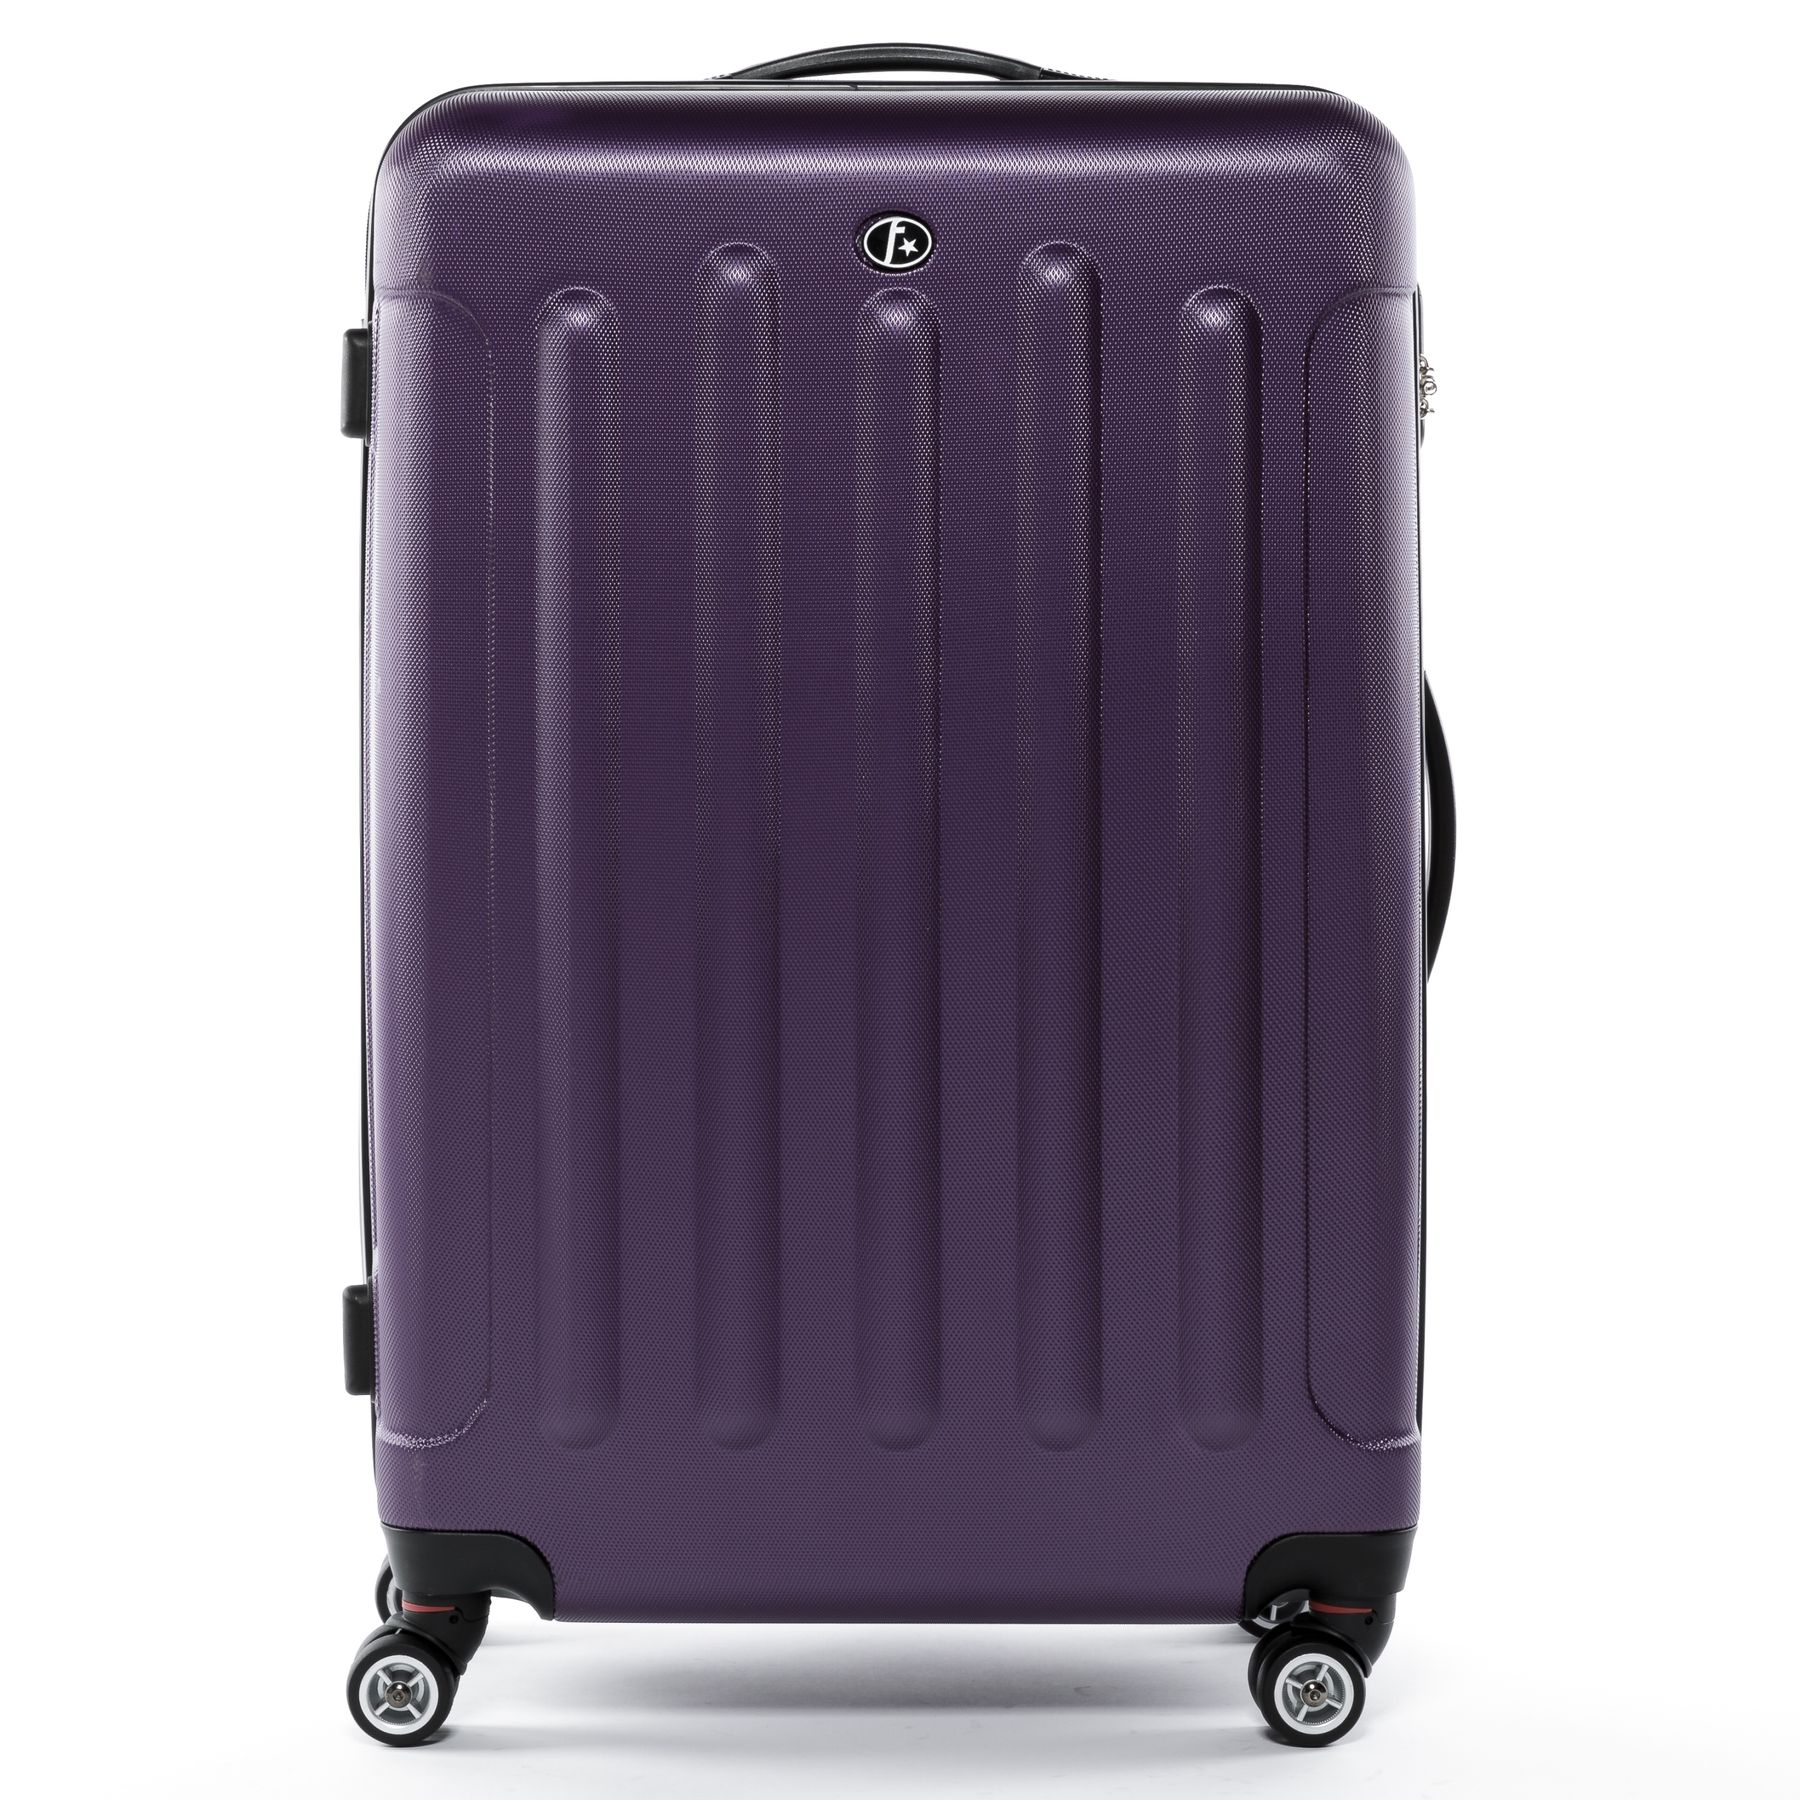 9748630d70a3 FERGÉ luggage set 3 piece ABS LYON purple hard shell travel trolley ...